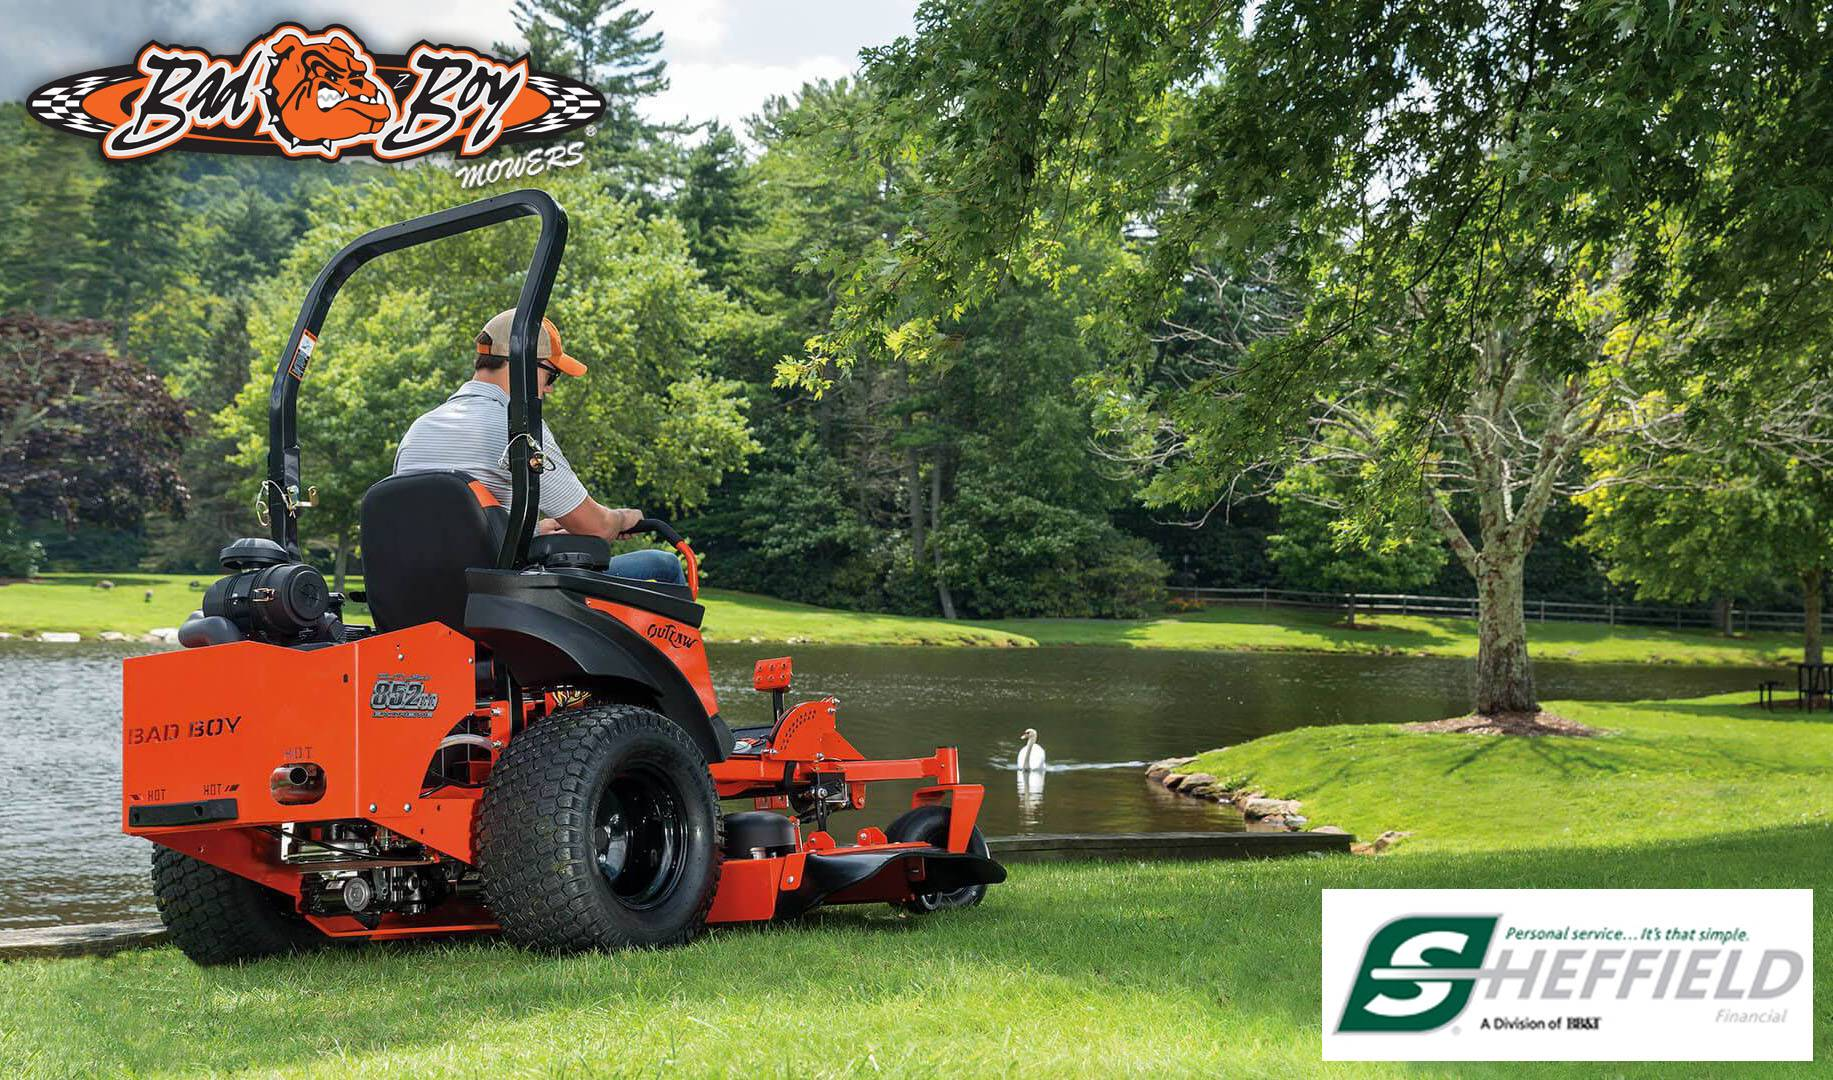 Bad Boy Mowers - Mow Now Pay Later, Sheffield Financial Offers